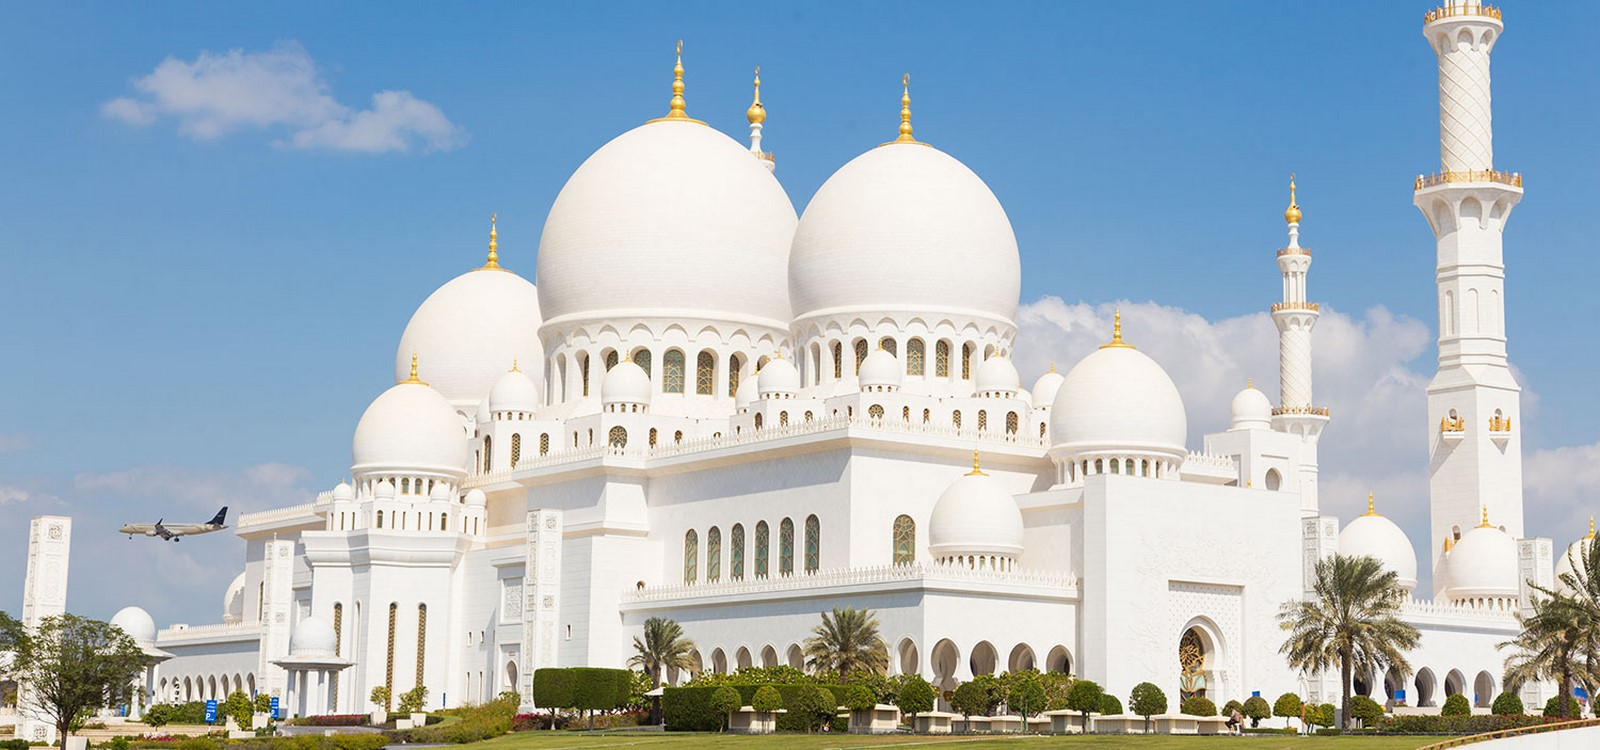 10 Structures that represent the Historical architecture of UAE - Sheet4